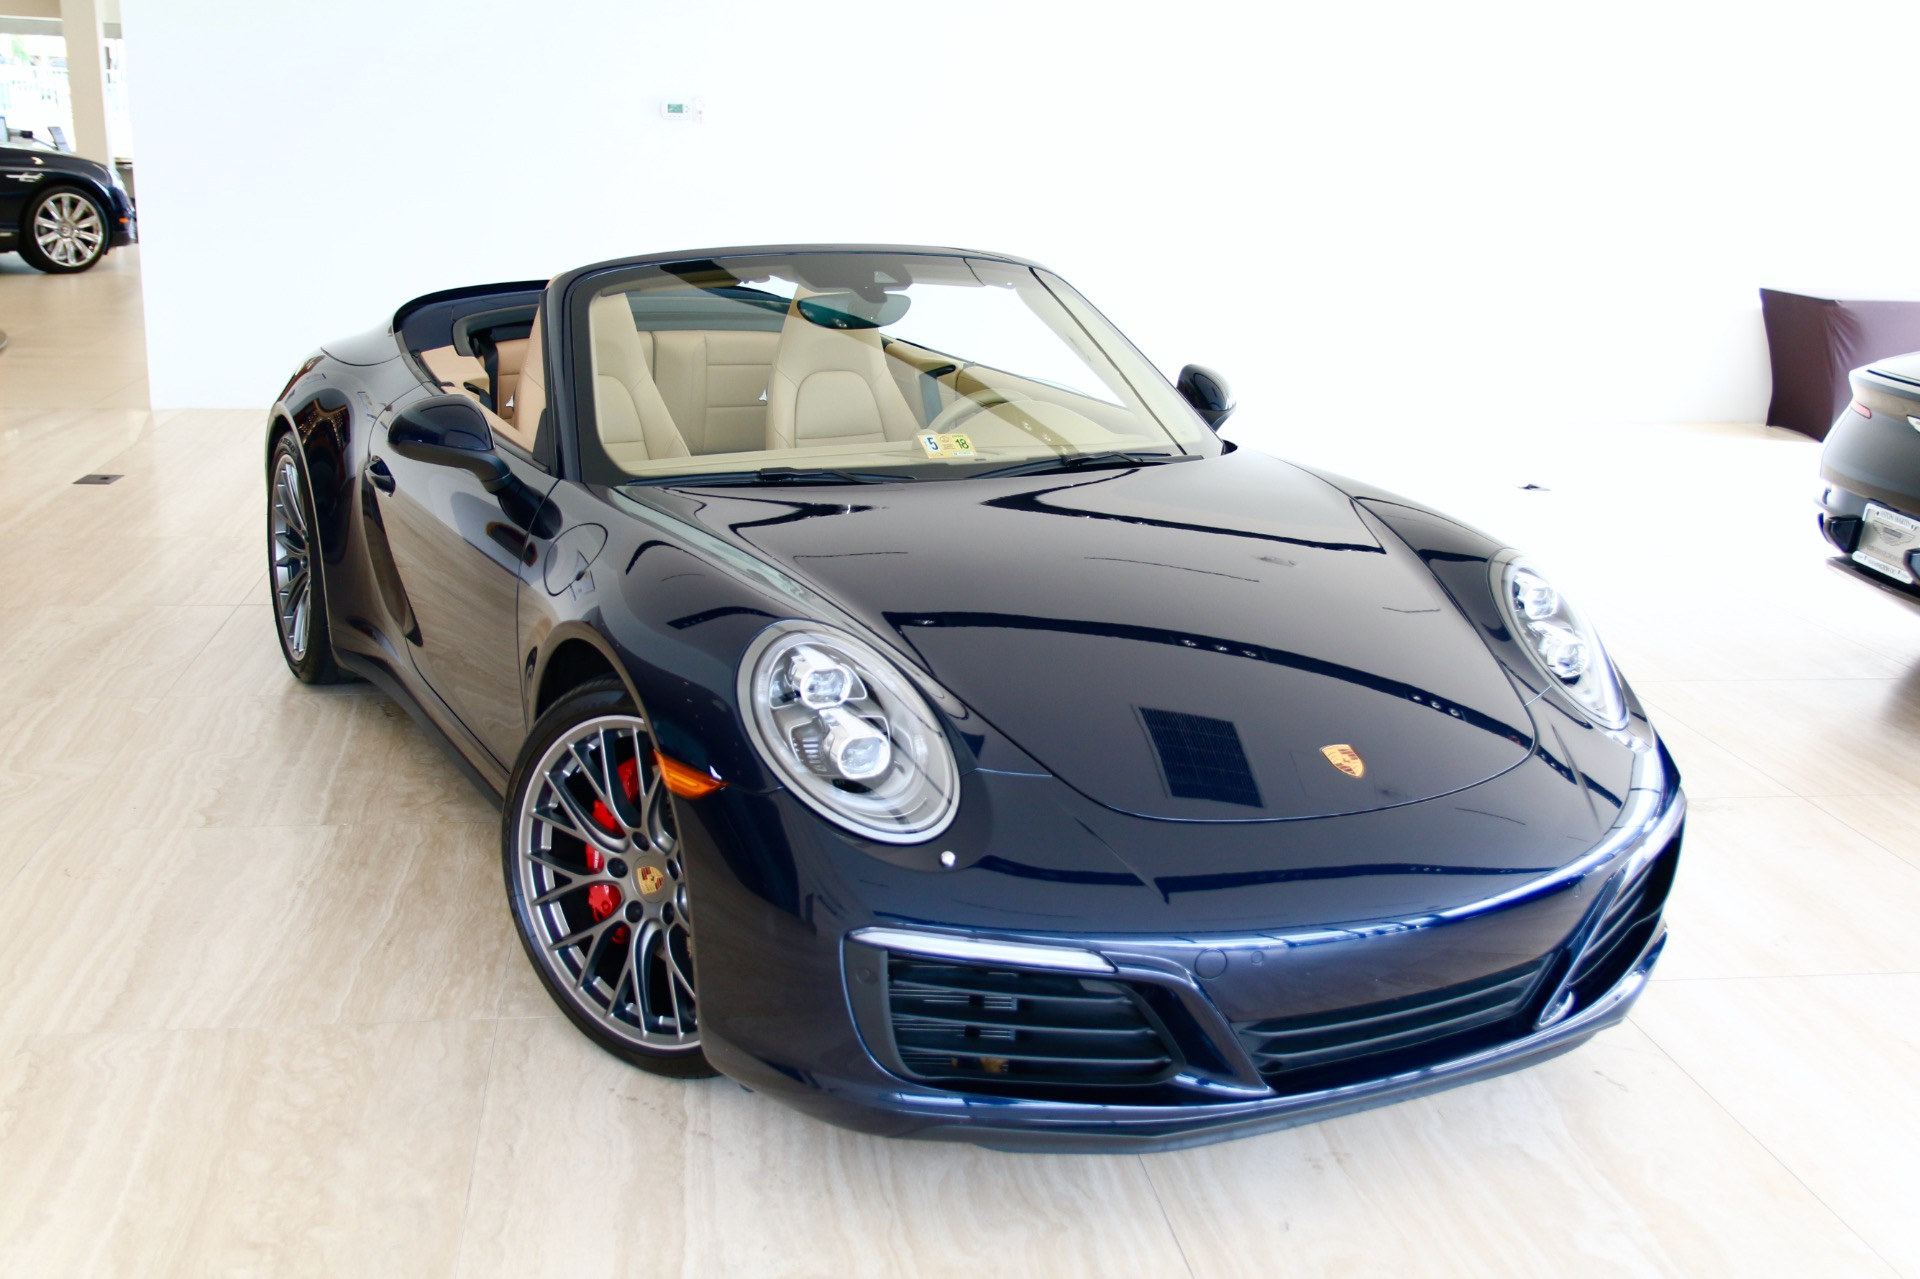 Porsche Dealers In Va >> 2017 Porsche 911 Carrera 4s Stock 7nl02917a For Sale Near